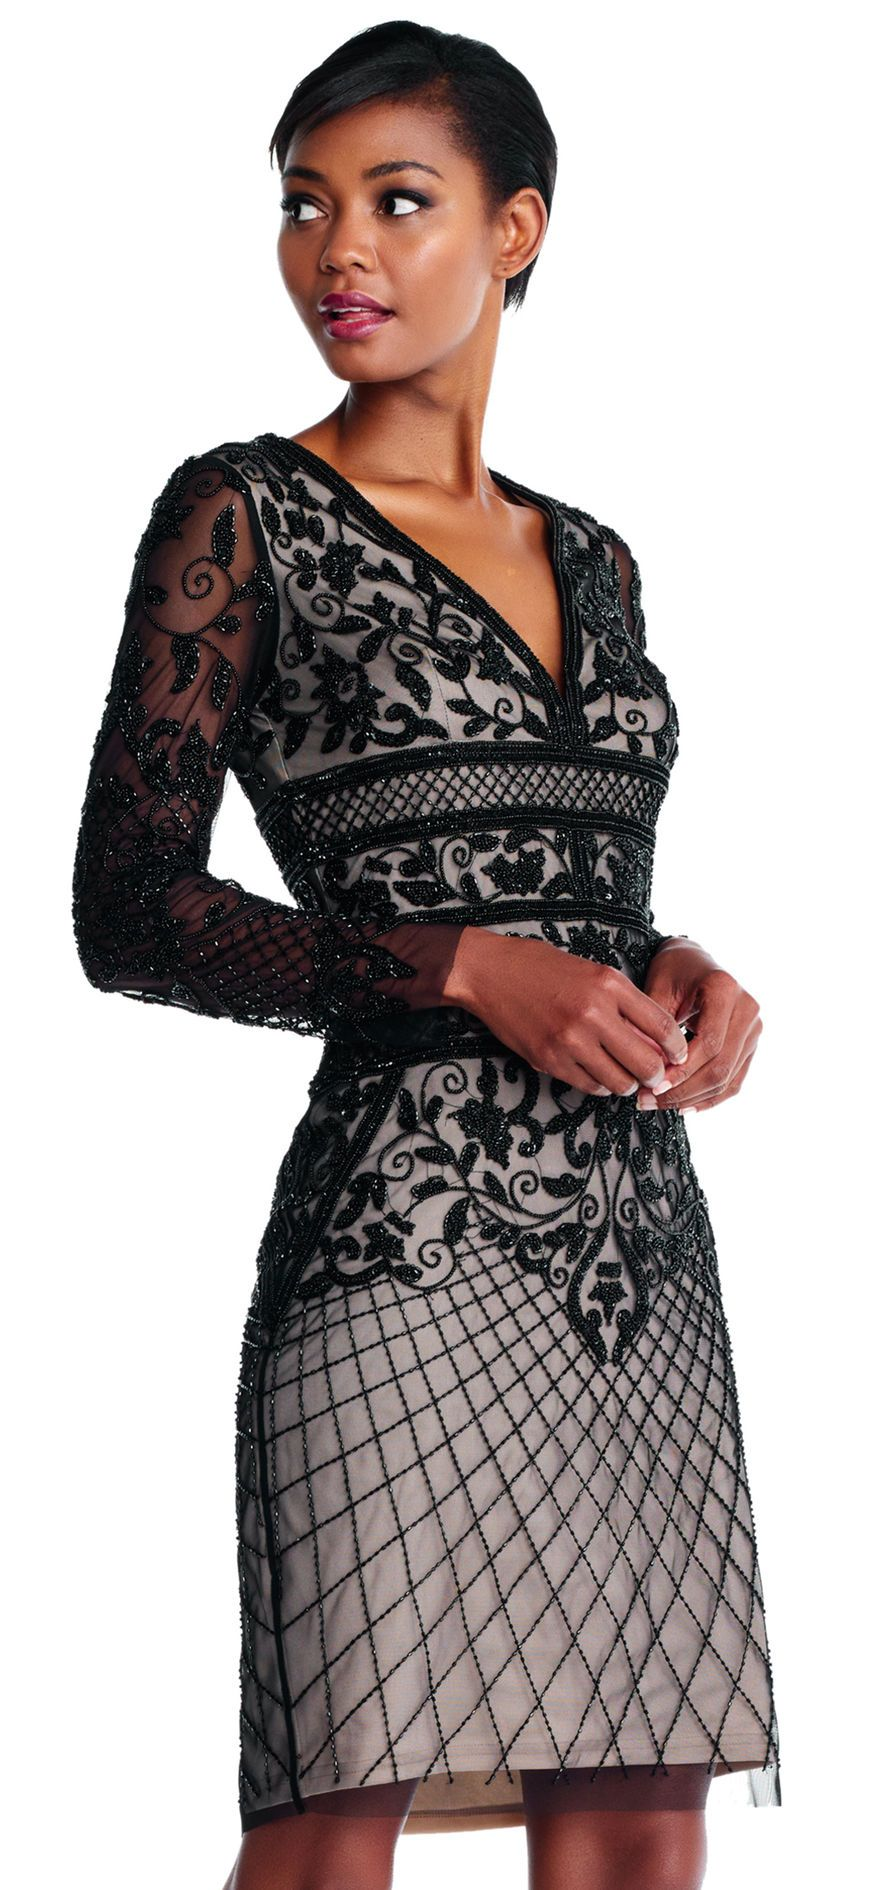 Garden floret beaded sheath dress with sheer long sleeves adrianna